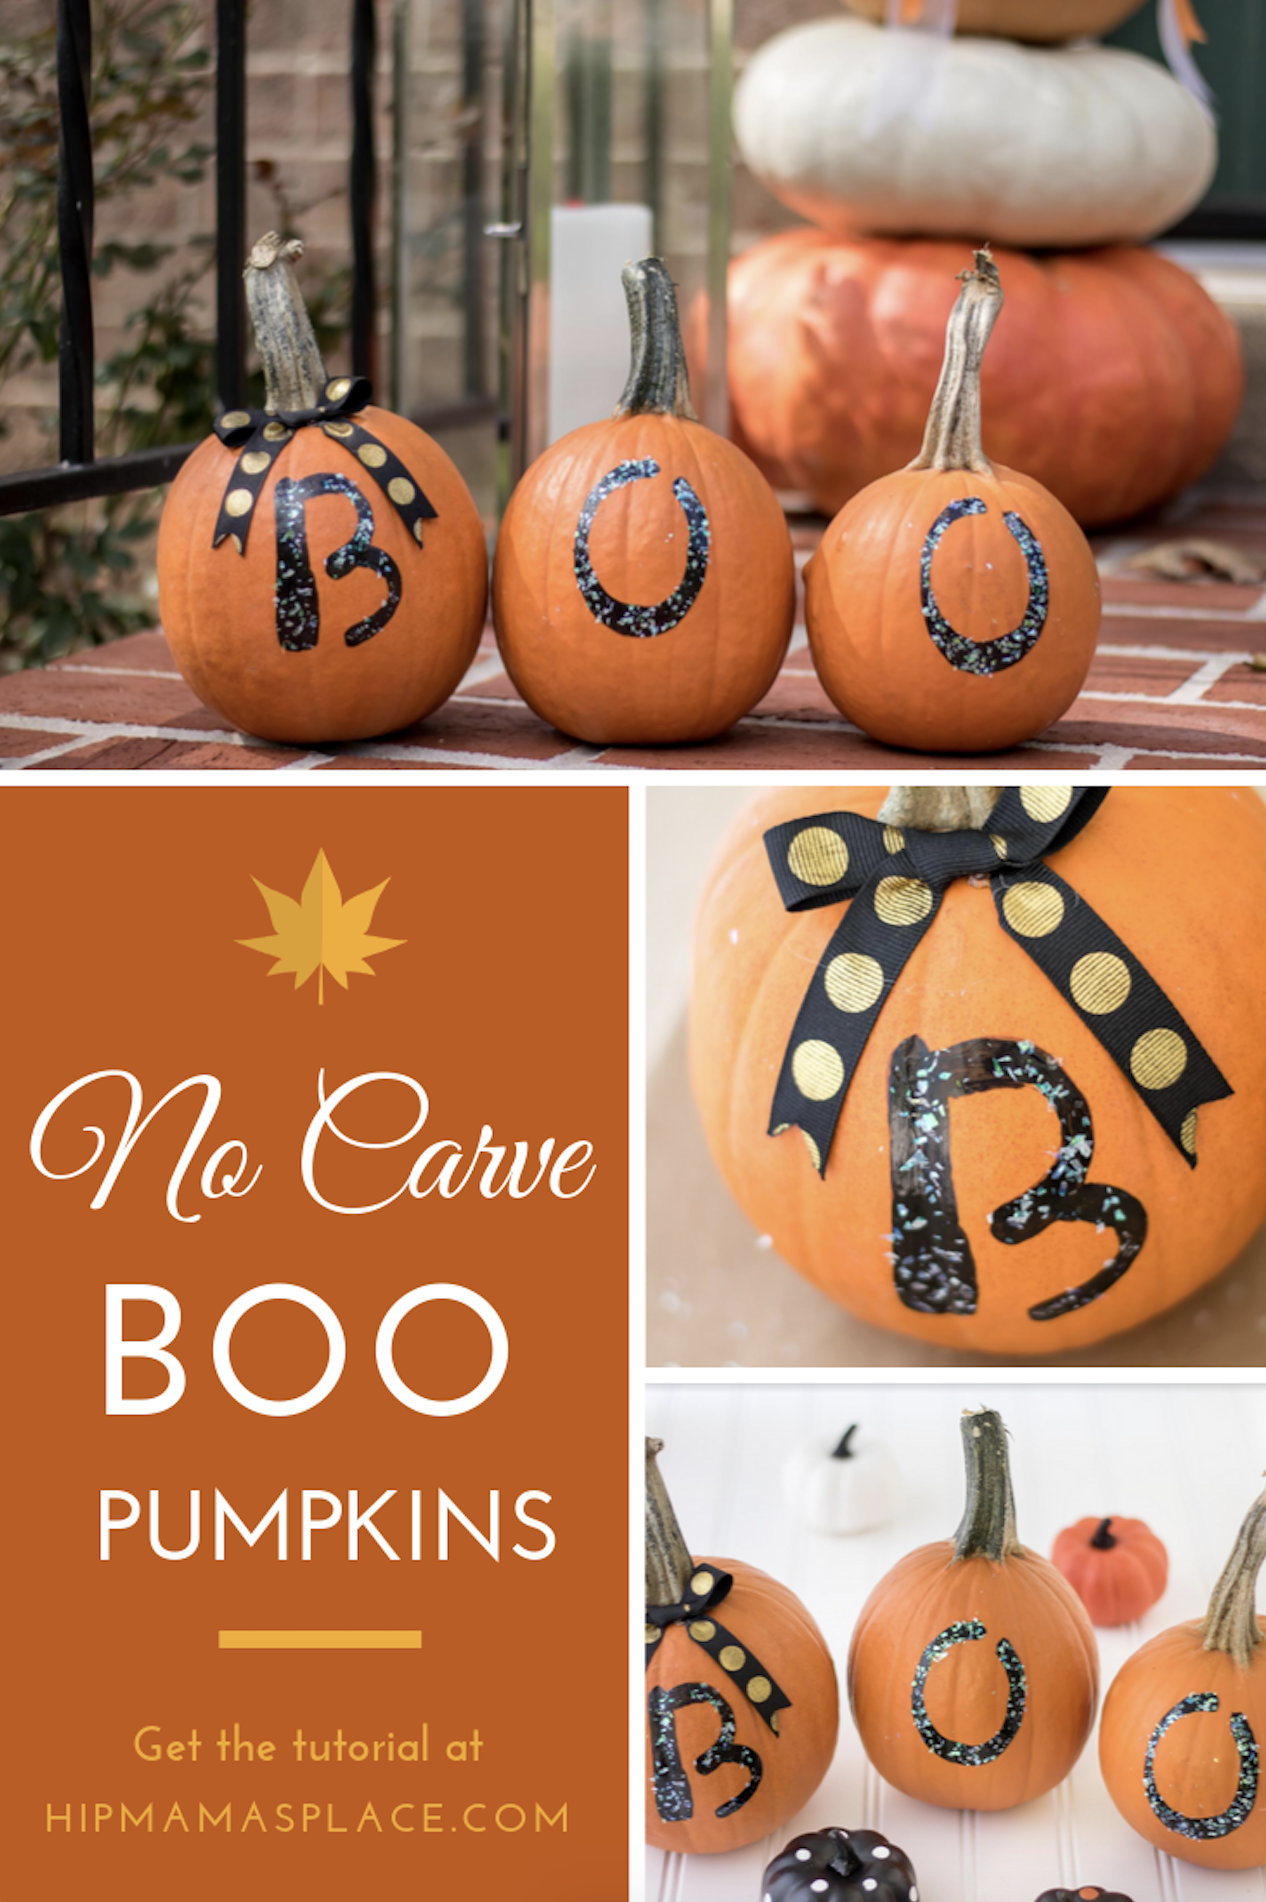 Here's a great idea for an easy, fun Fall craft to make with your family: No Carve Boo Pumpkins! Show the spirit of Halloween.. without as much mess! #fall #pumpkins #homedecor #falldecor #pumpkindecor #decorideas #Halloween #Halloweendecor